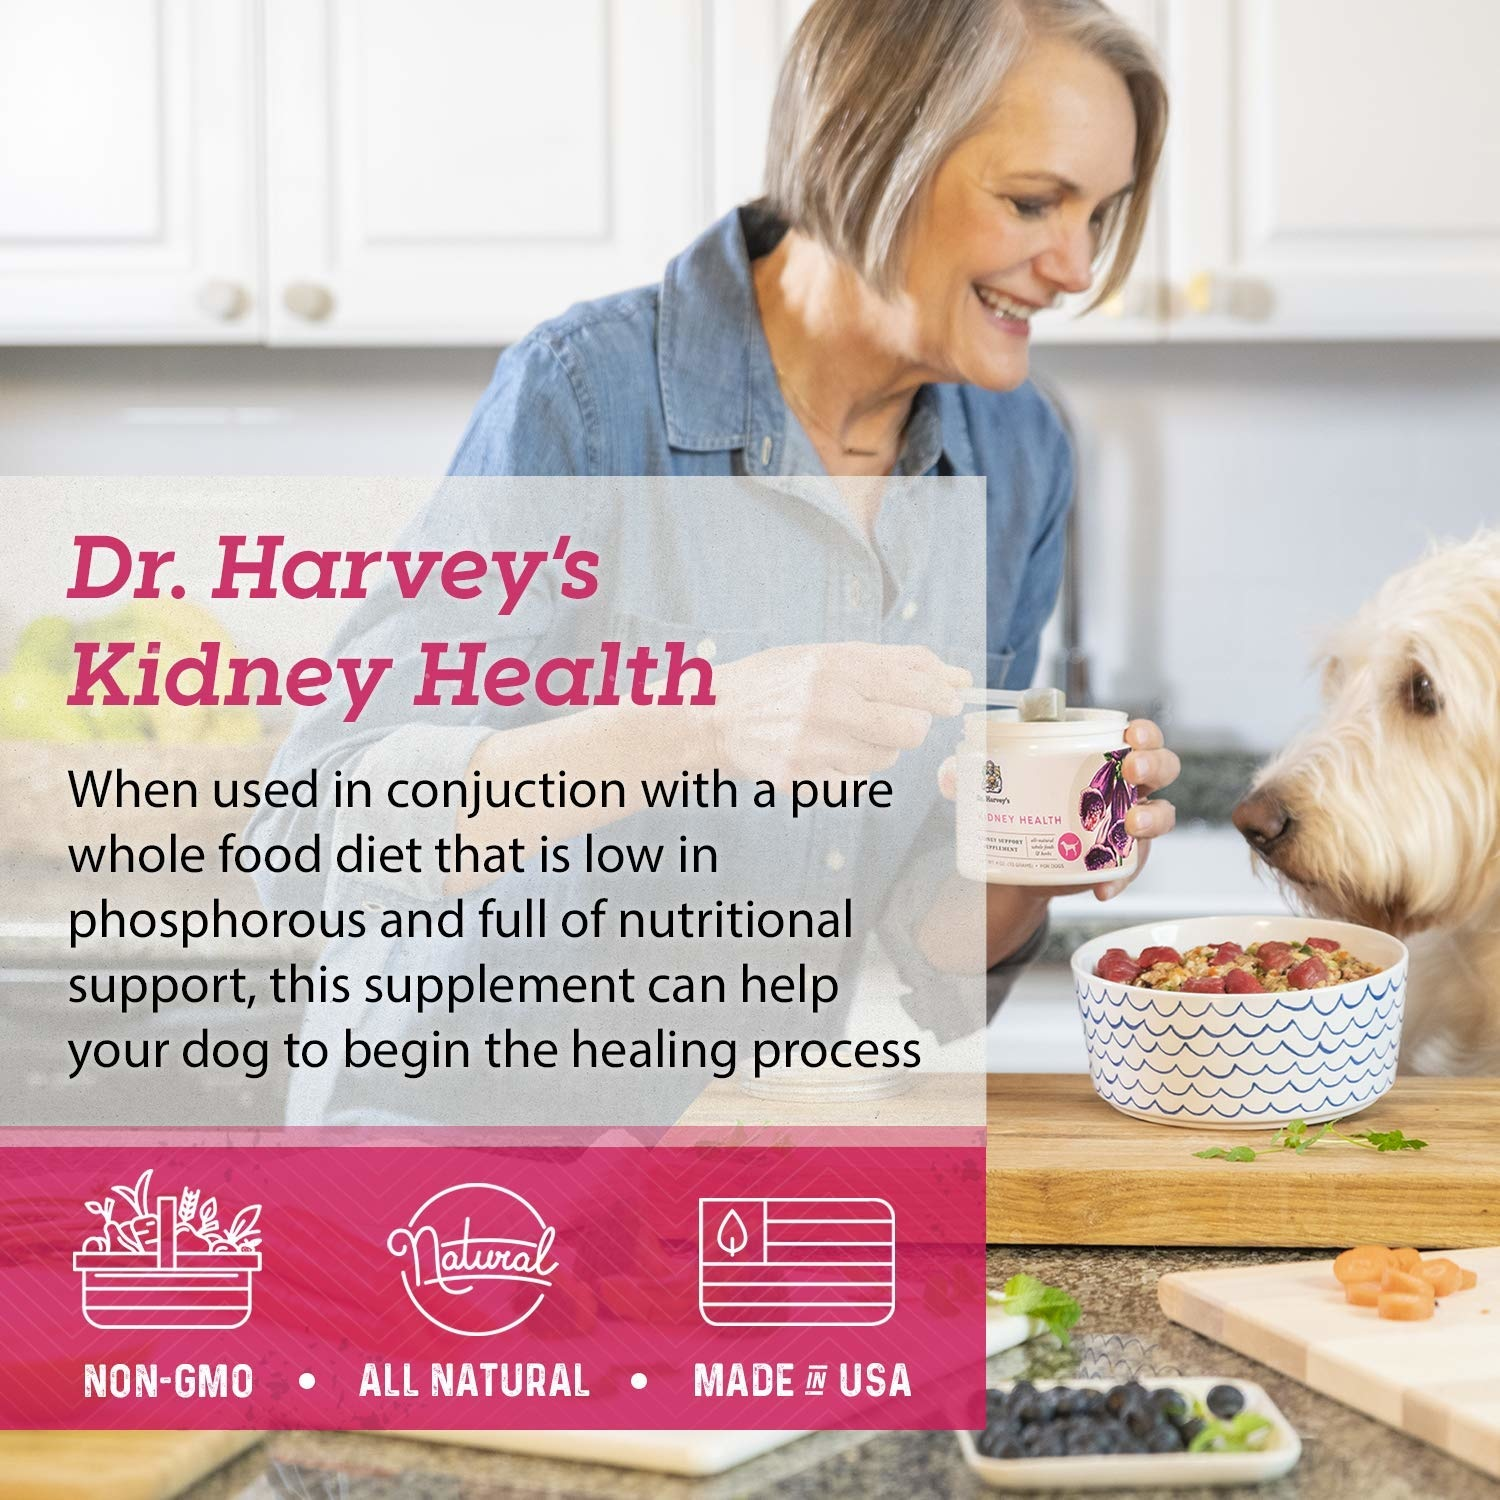 Dr Harvey's Dr Harvey's Kidney Health 4 oz